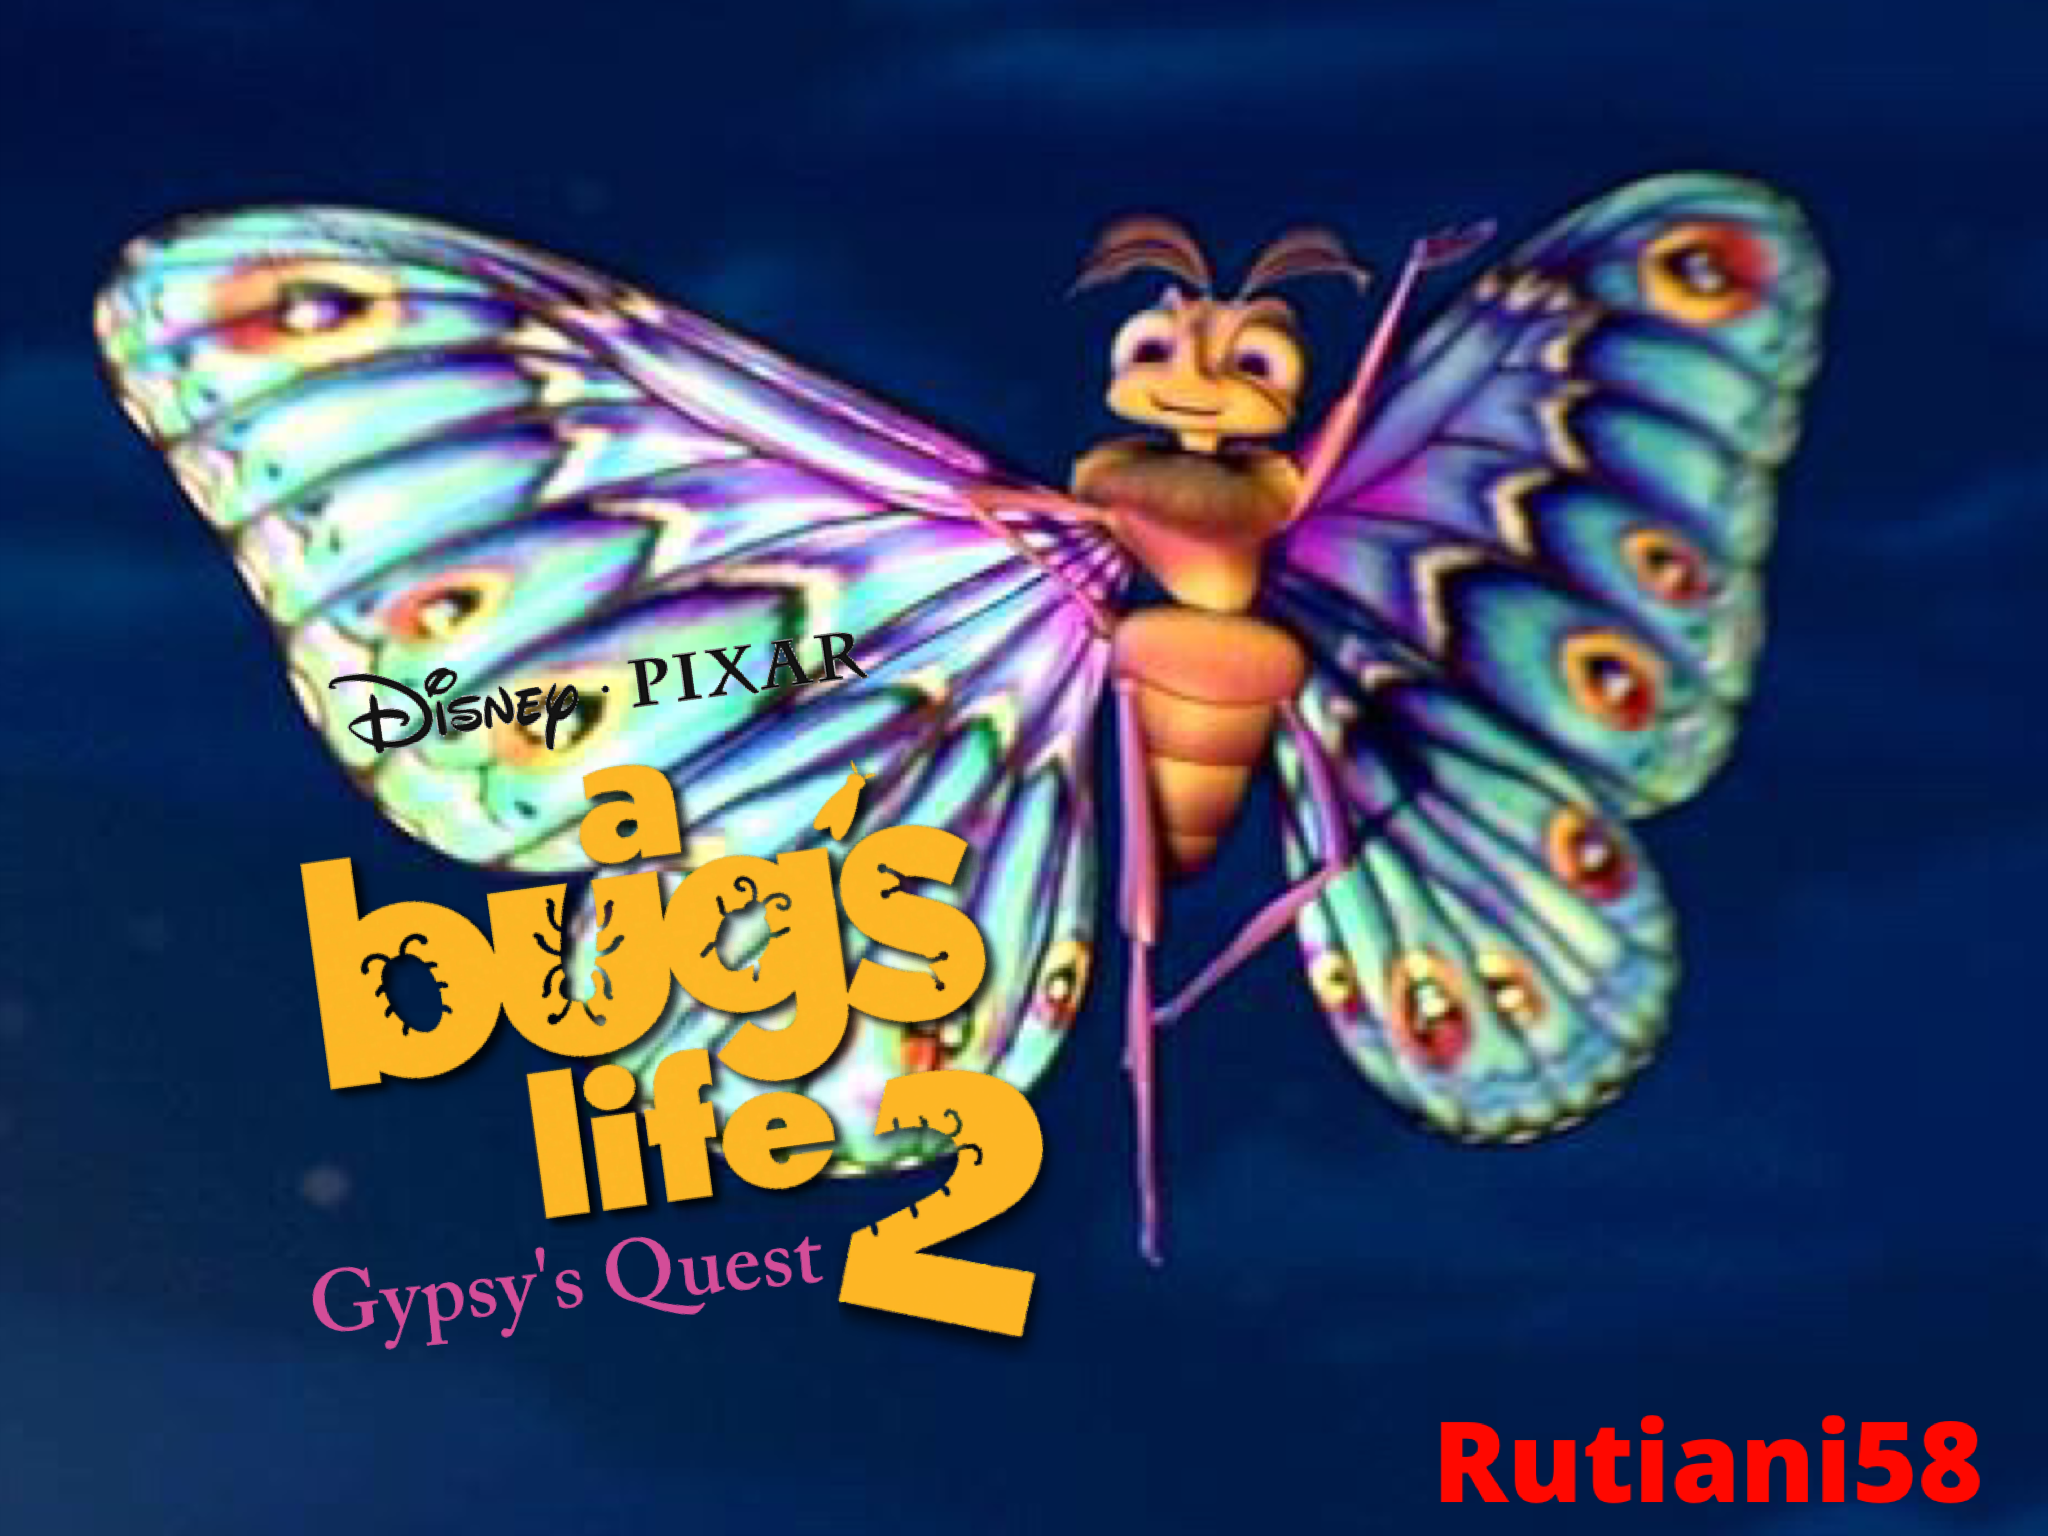 Gypsy's Quest (A Bug's Life sequel)